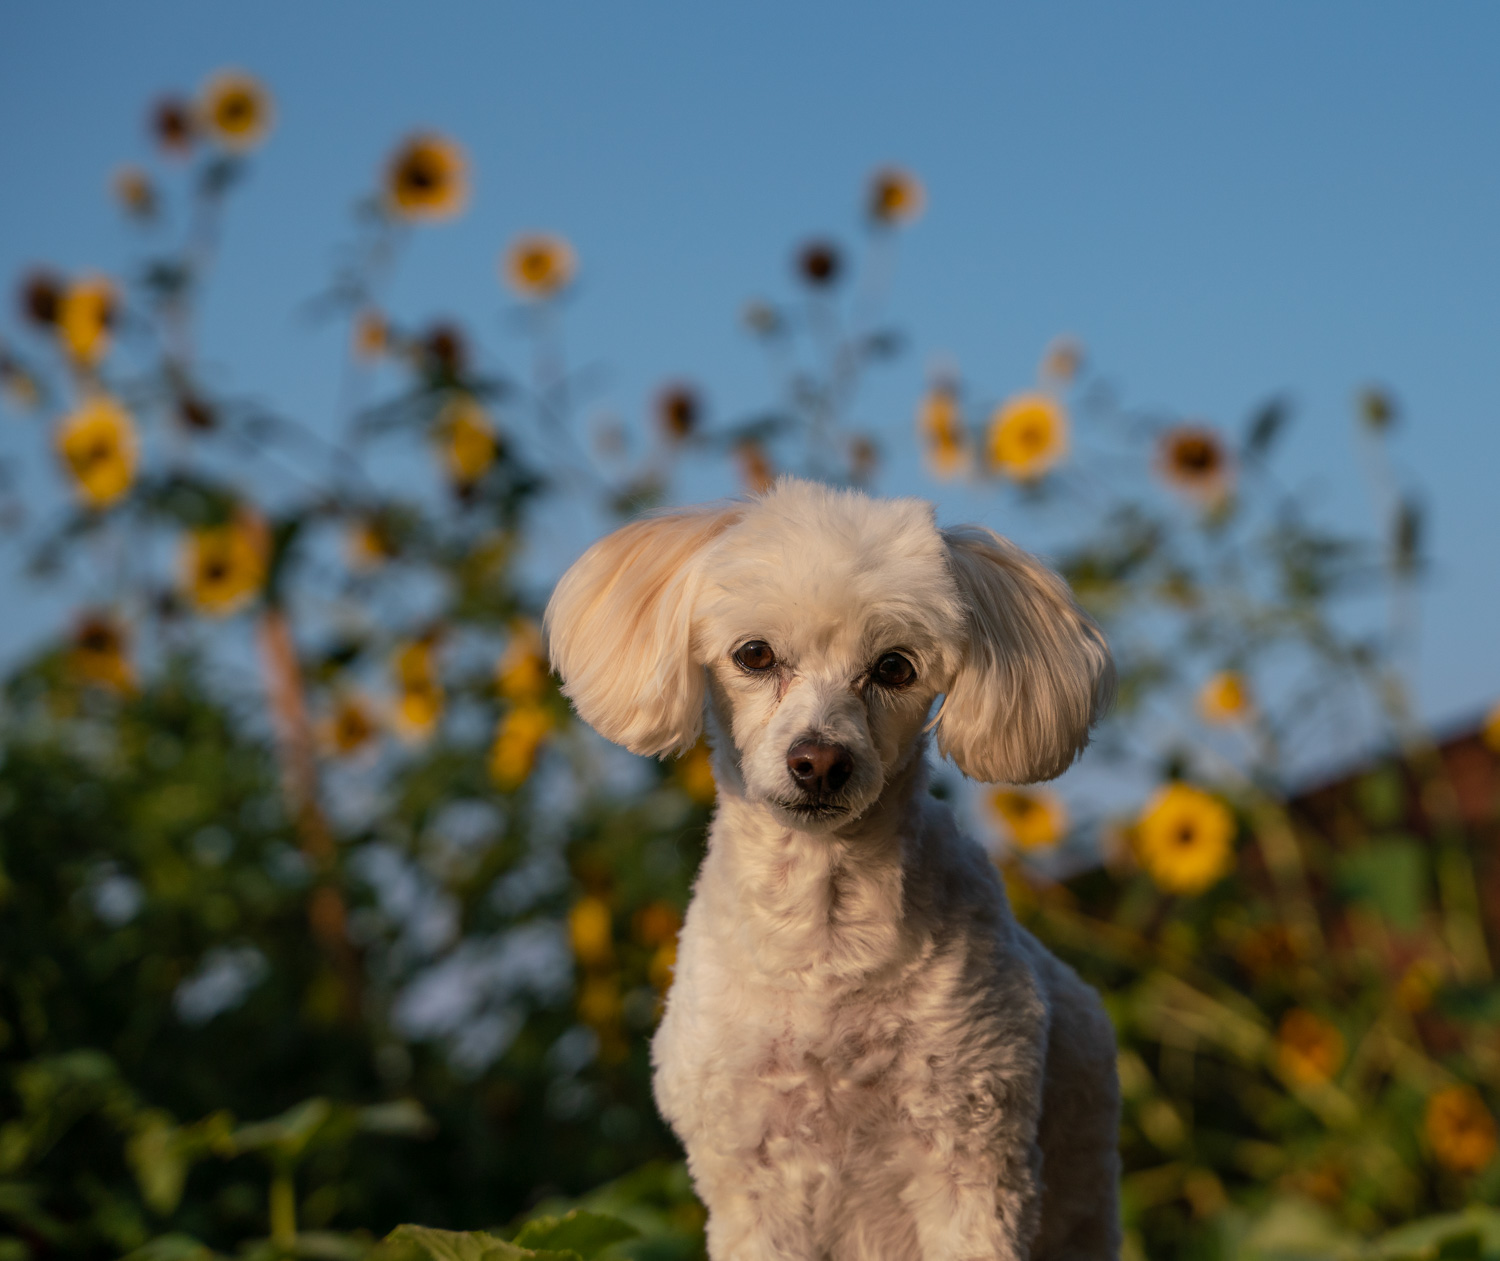 Bailey at sunrise with sunflowers